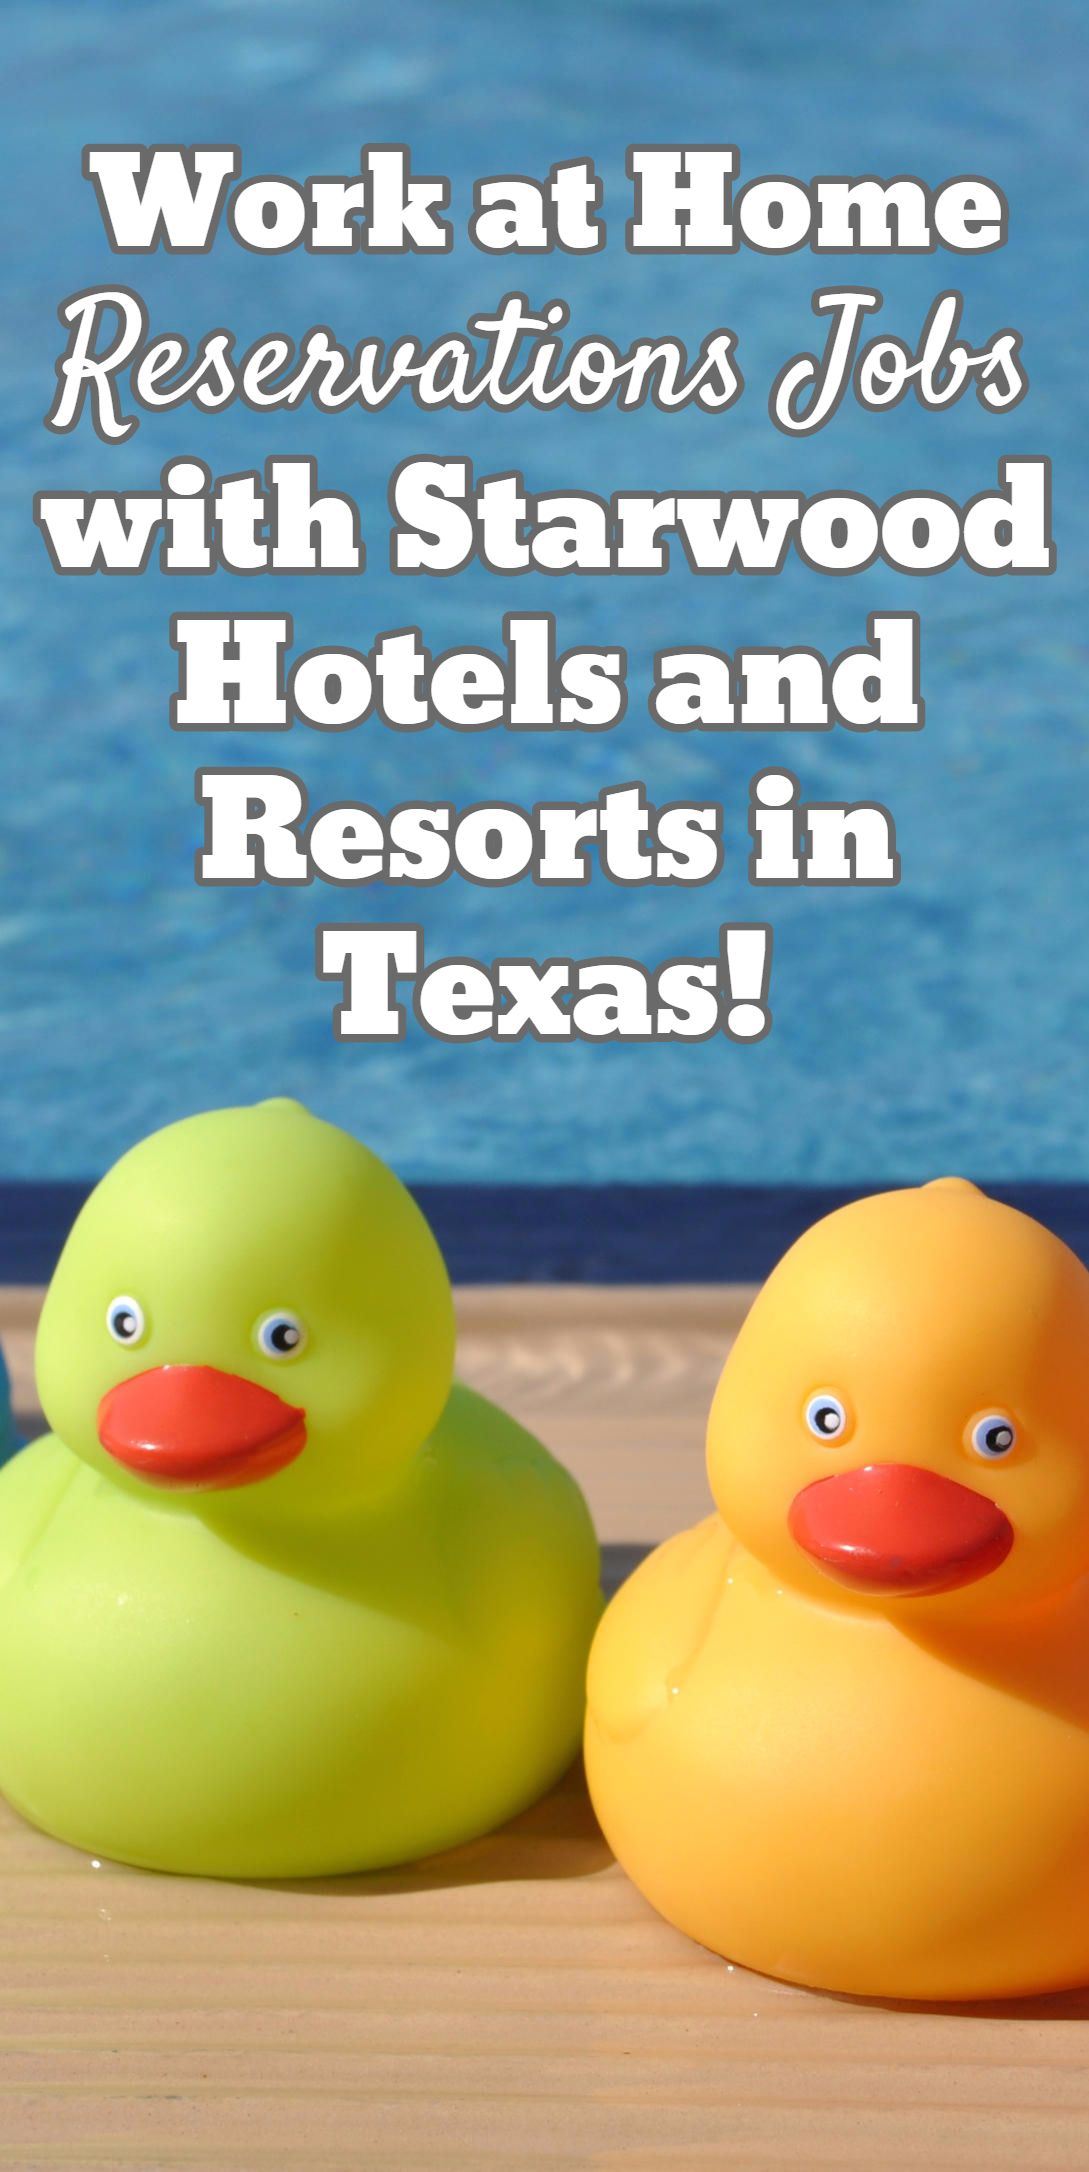 Work At Home Reservations Jobs With Starwood Hotels And Resorts In Texas